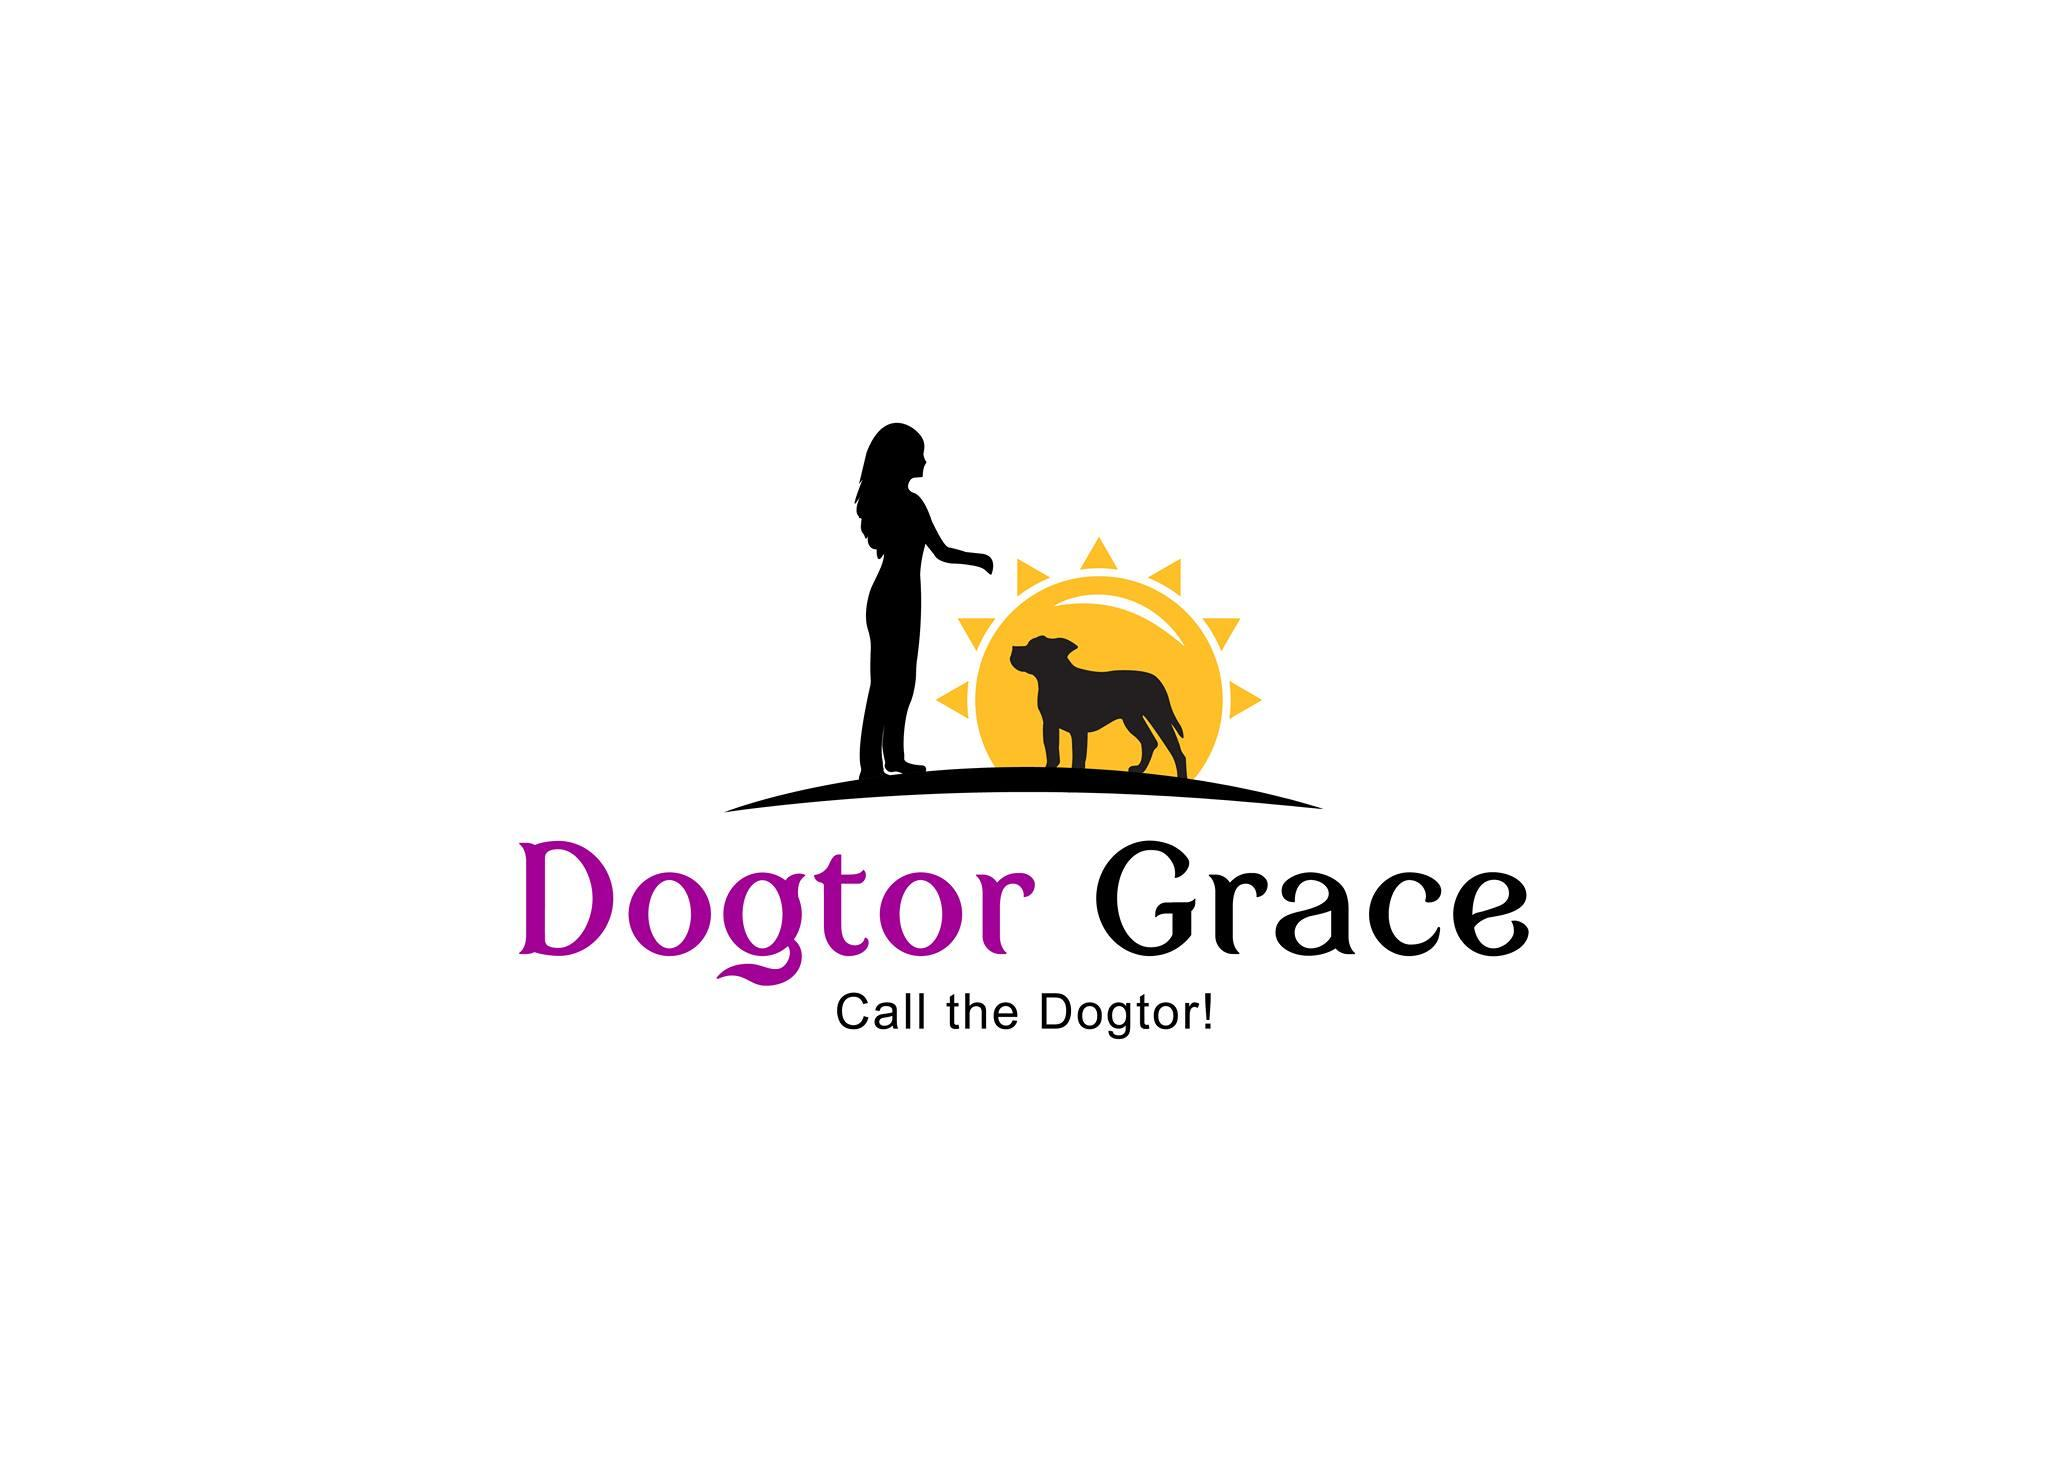 This is the Dogtor Grace logo.  It shows the silhouettes of a lady and a dog, and they look to have a good connection. They are standing in front of the sun.